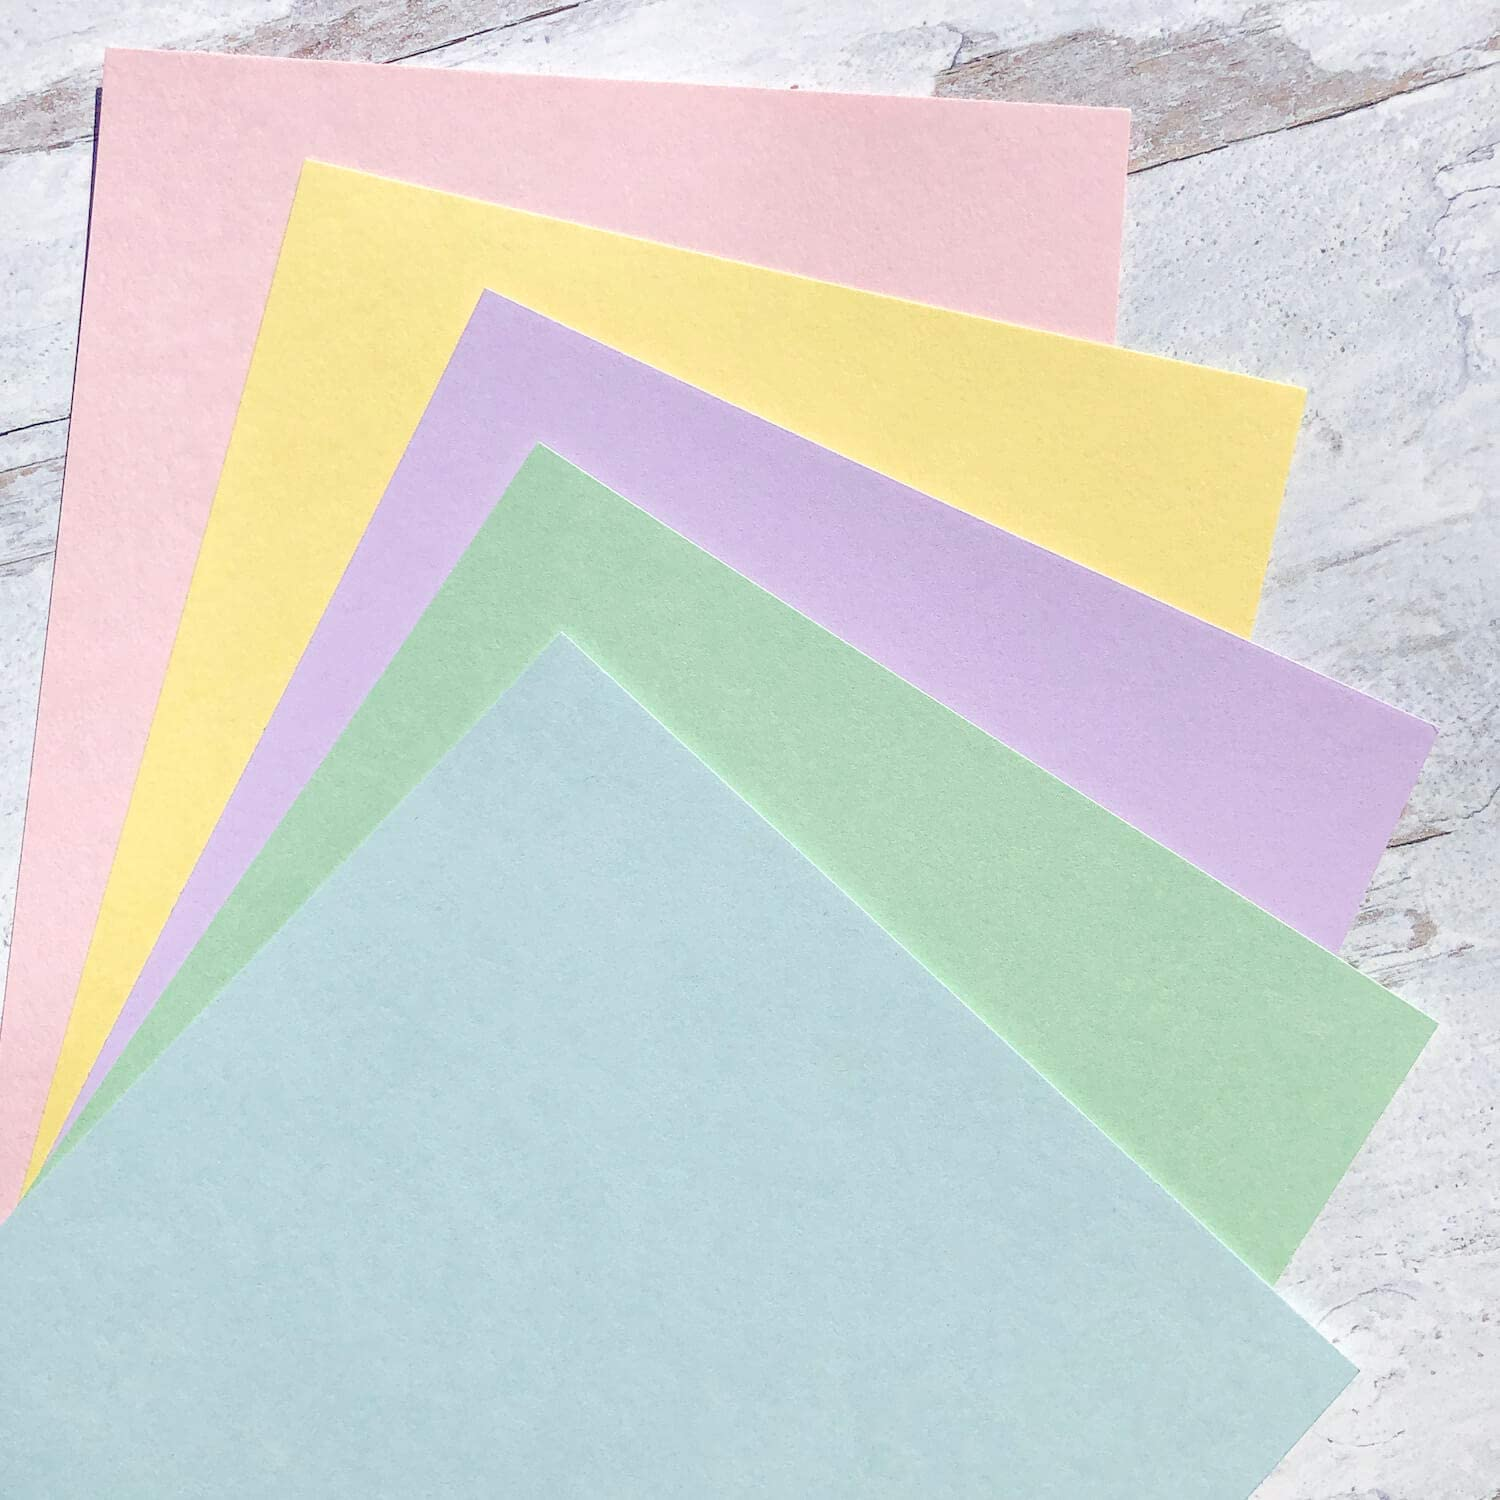 Pretty in Pastels 25 Sheets from Cardstock Warehouse Multi-Pack Assortment 8.5 x 11 inch 100 lb Cover Cardstock